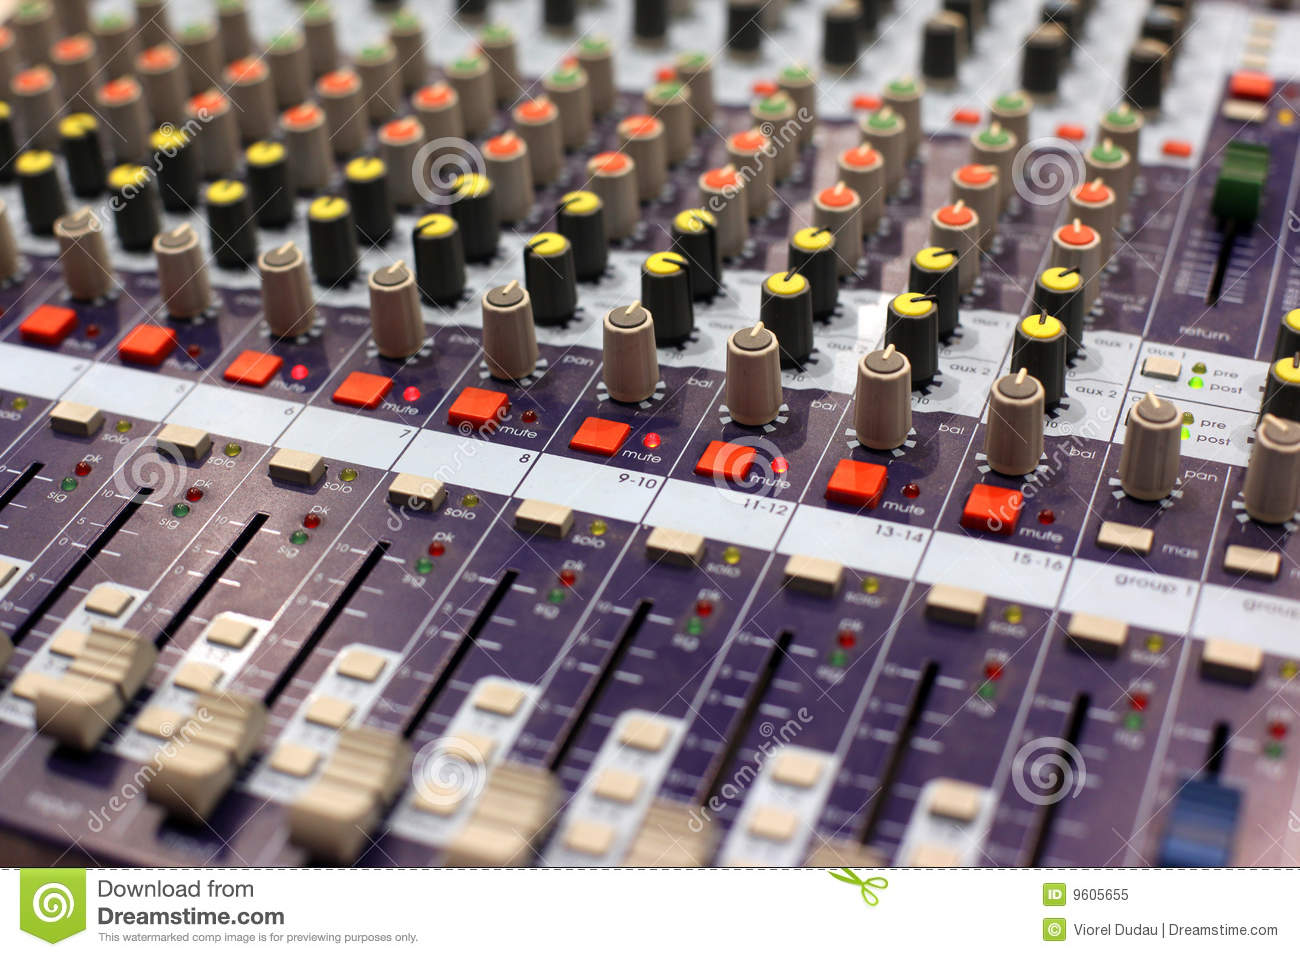 Studio audio mixer